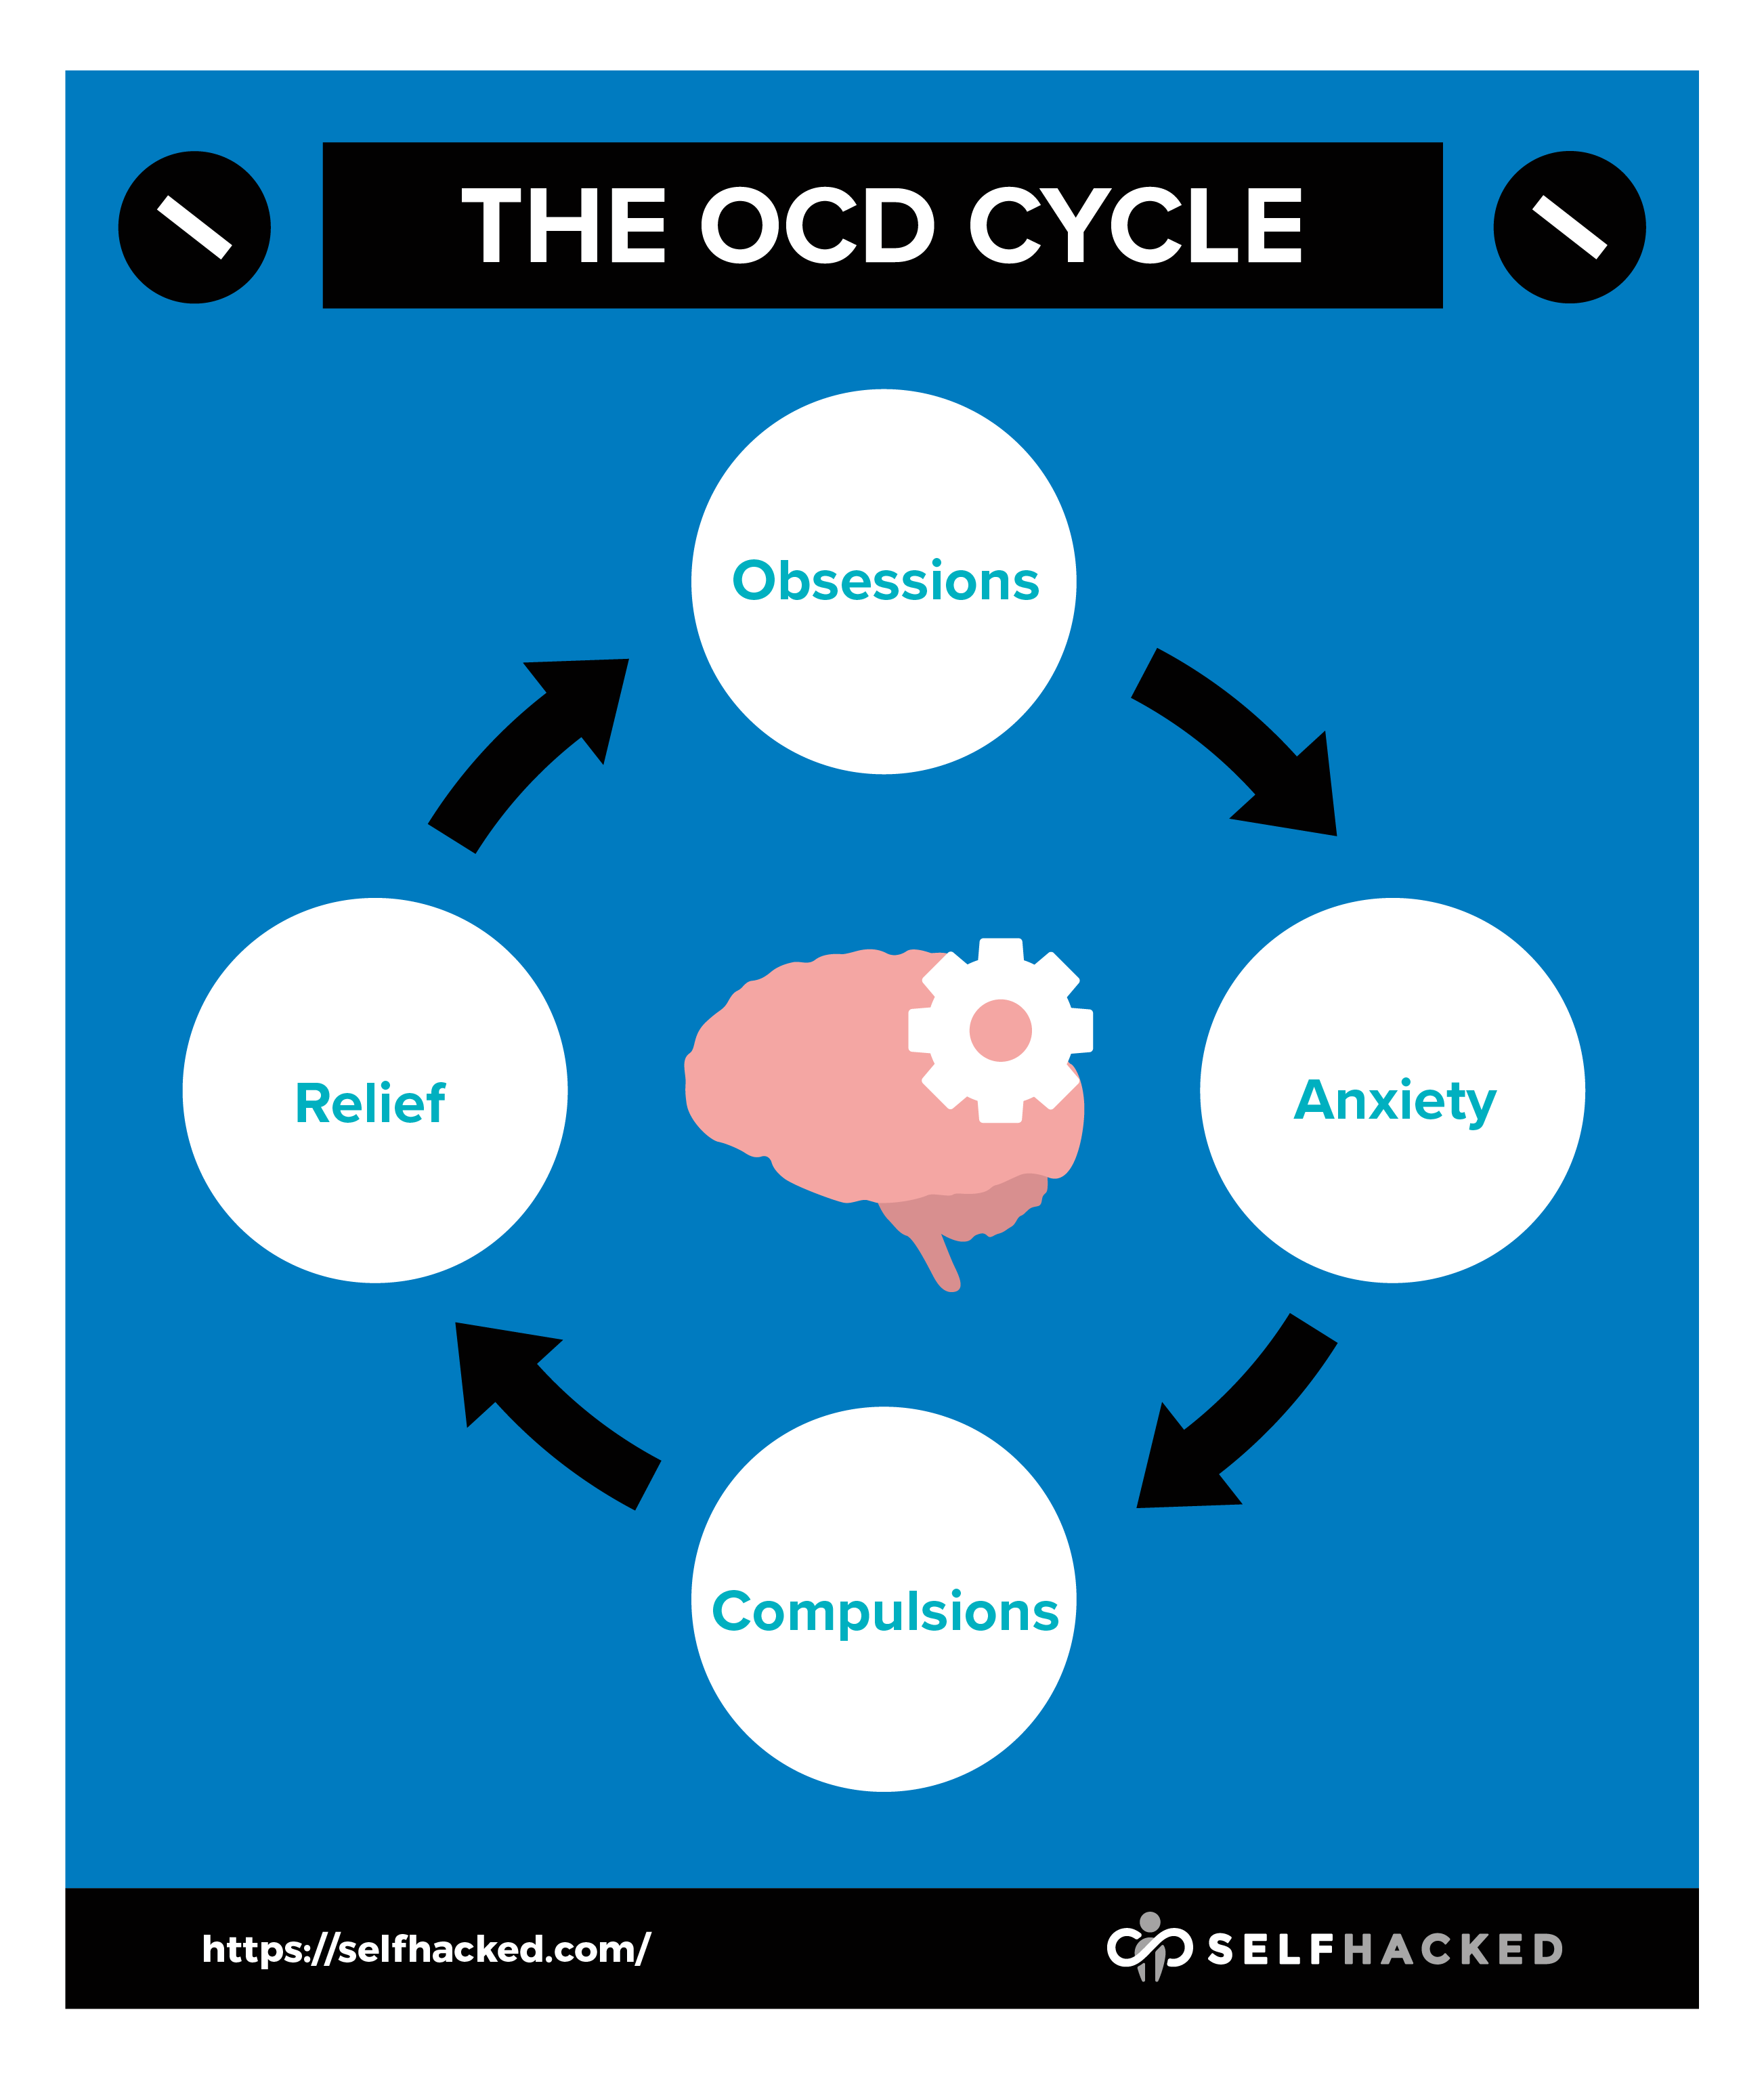 Where are experienced people with OCD (not doctors)